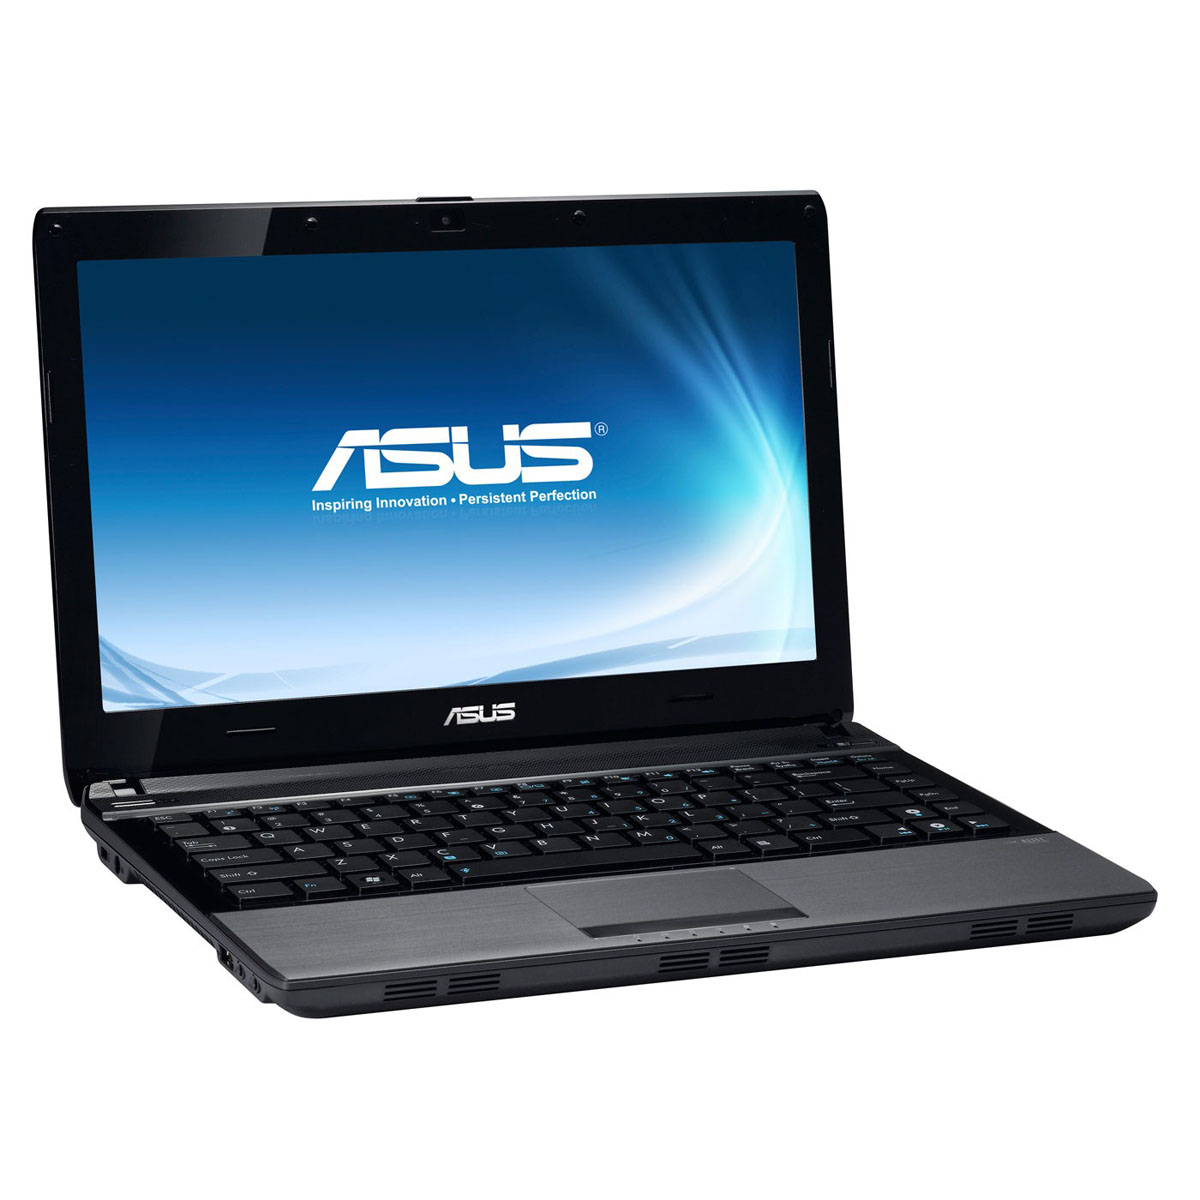 asus p31sd ro215x p31sd ro215x achat vente pc portable sur. Black Bedroom Furniture Sets. Home Design Ideas